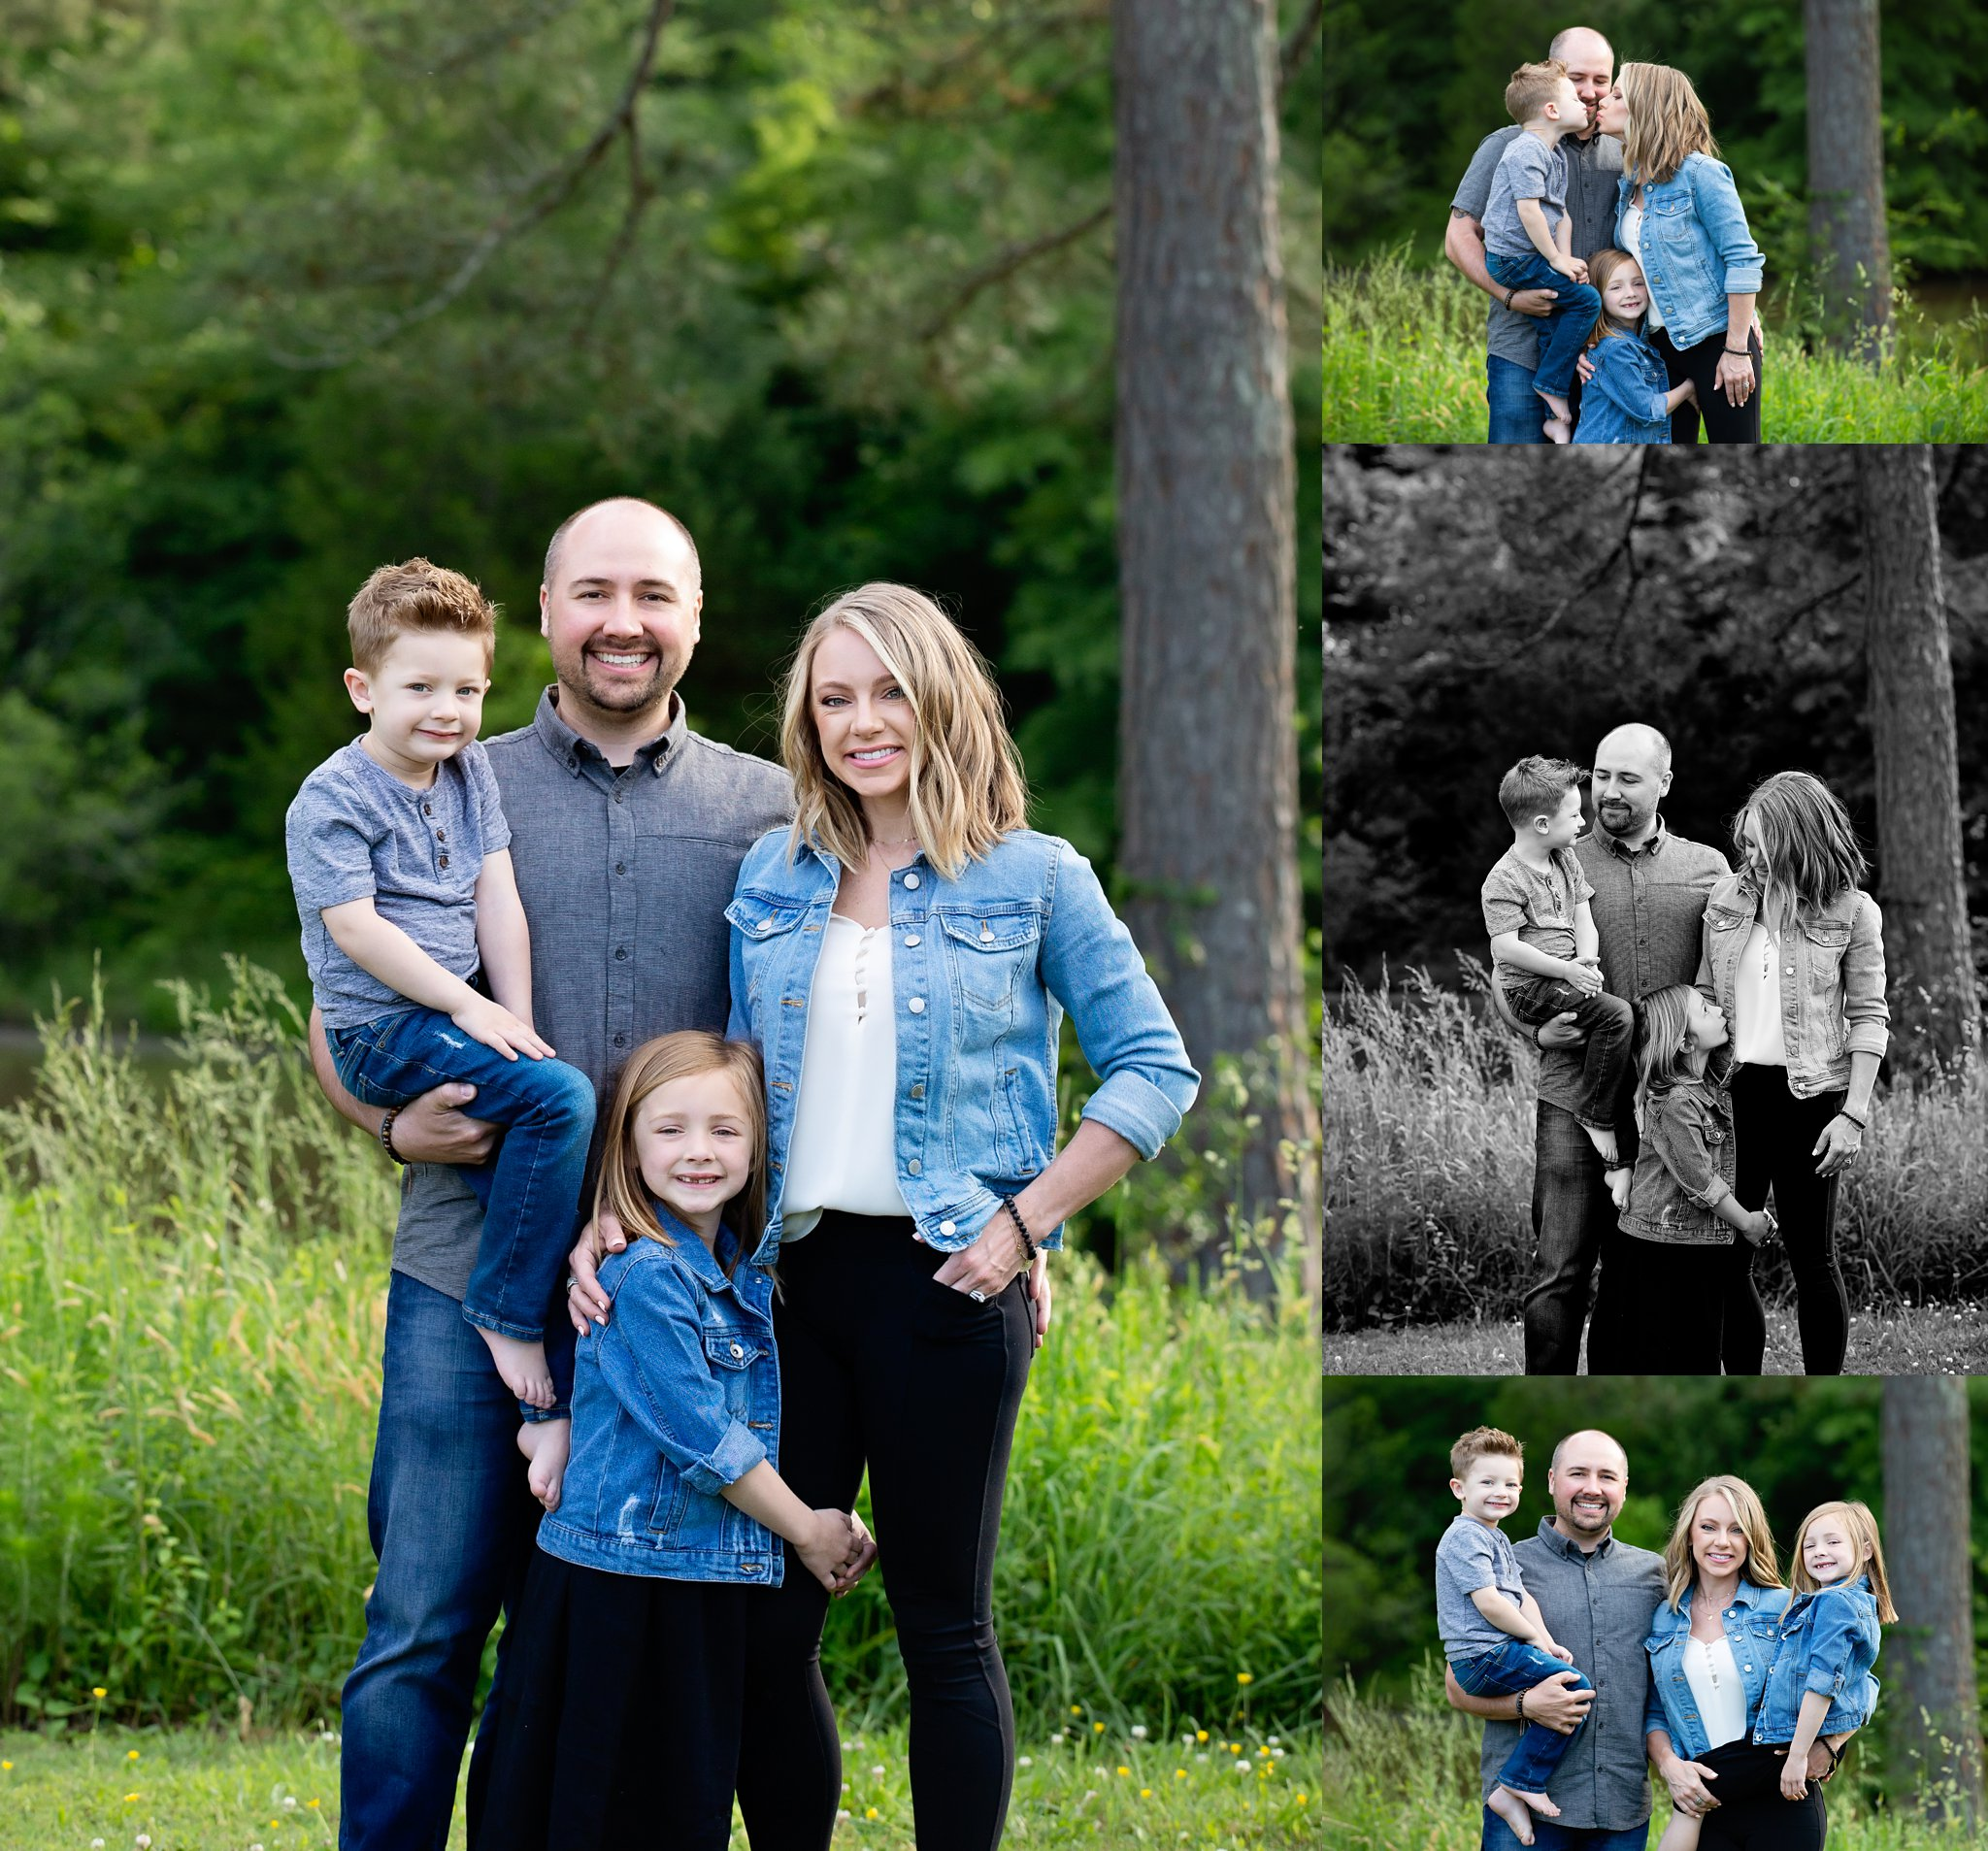 Apex_Cary_Spring_Mini_Session_Family_Photography.jpg